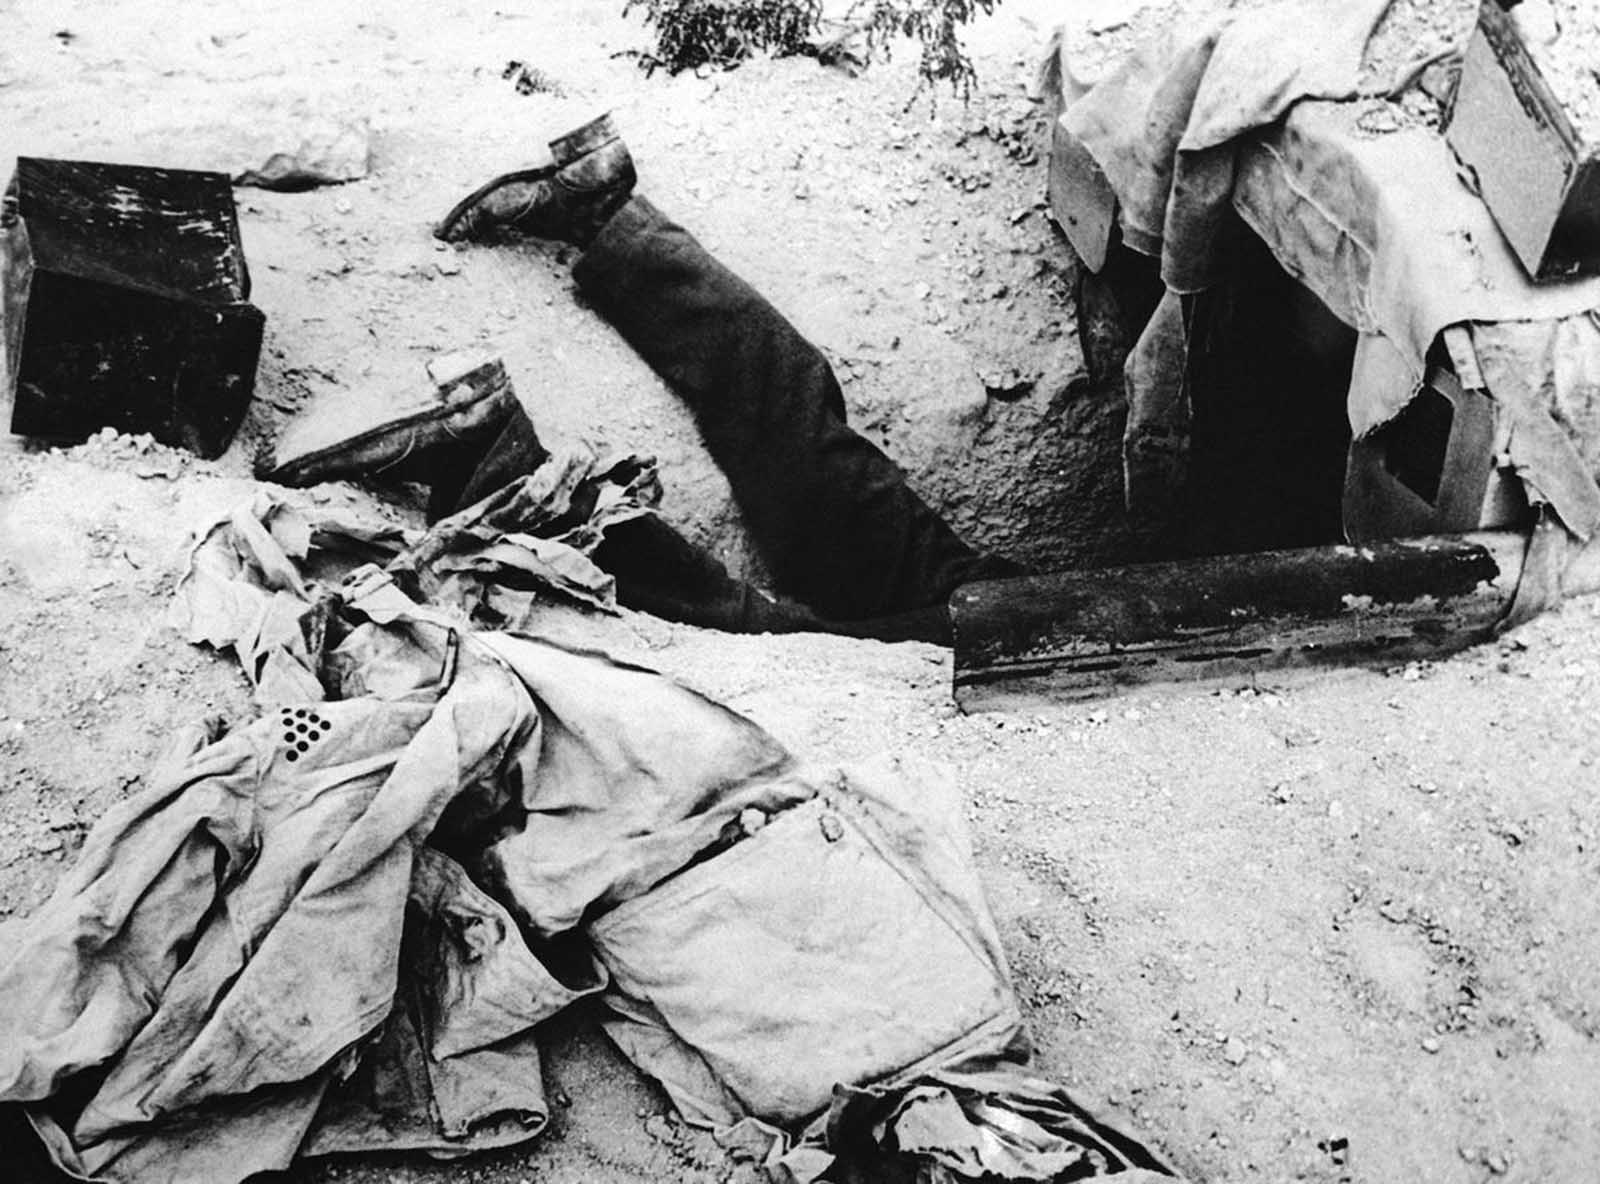 This German had sought cover in a bomb shelter, attempting to escape an Allied attack in the Libyan desert, on December 1, 1942. He did not make it.